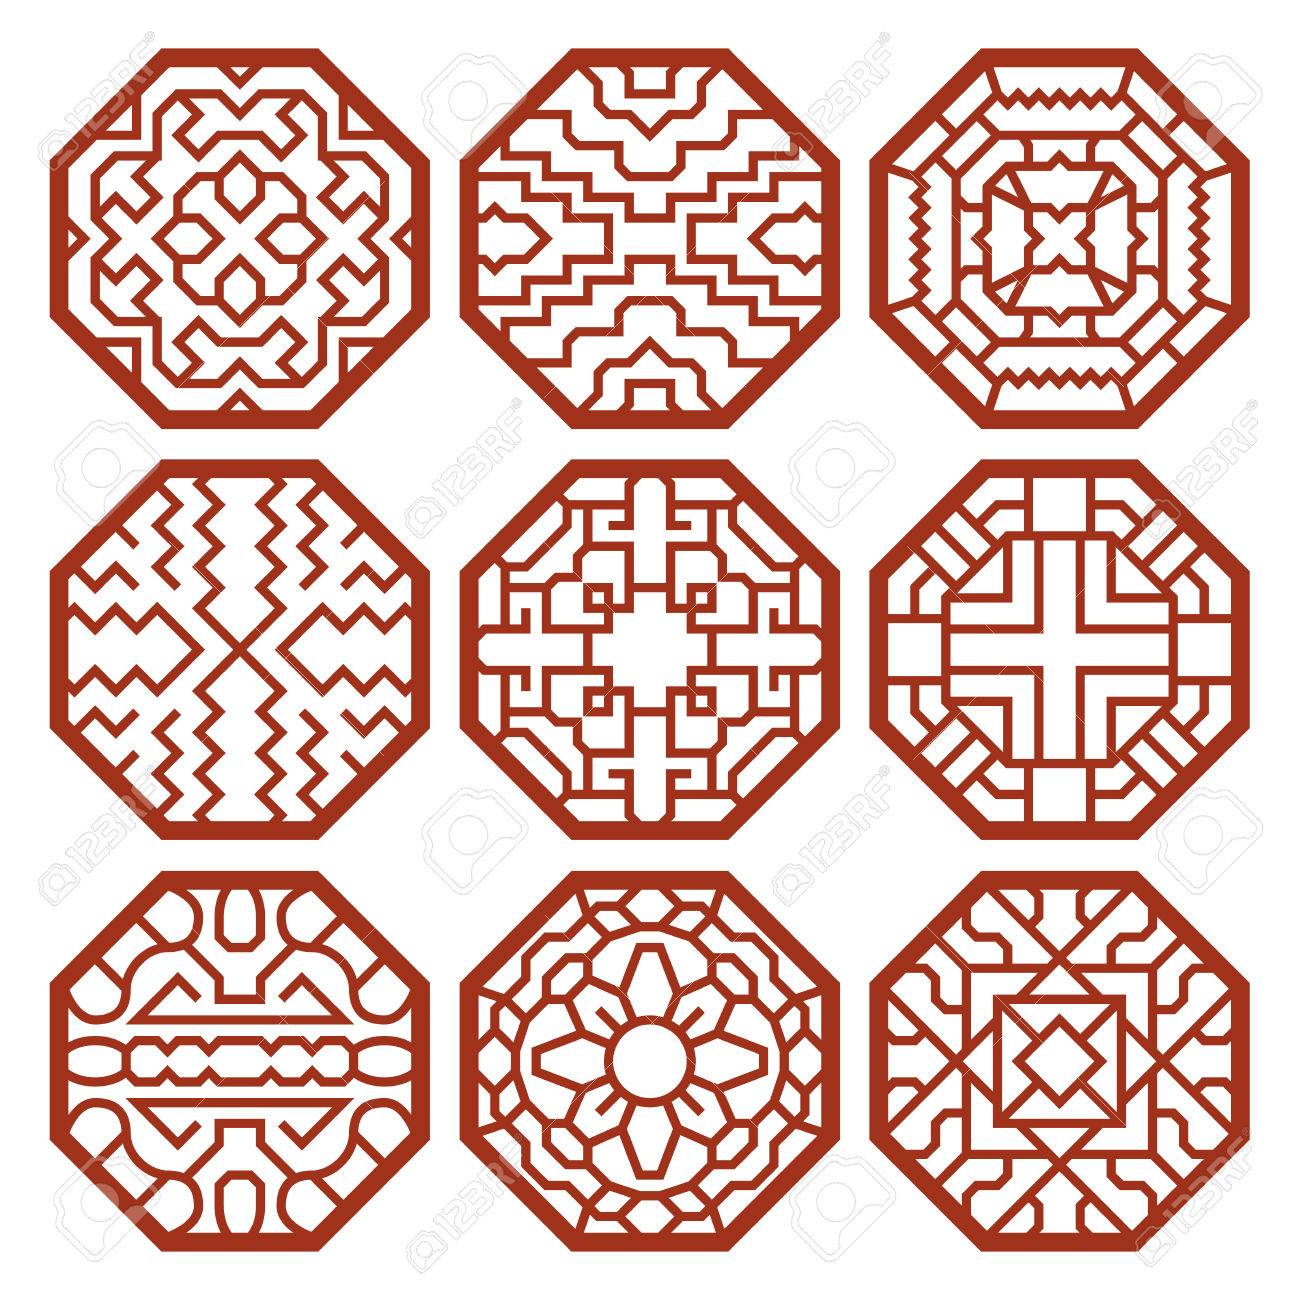 Korean Traditional Vector Patterns Ornaments And Symbols